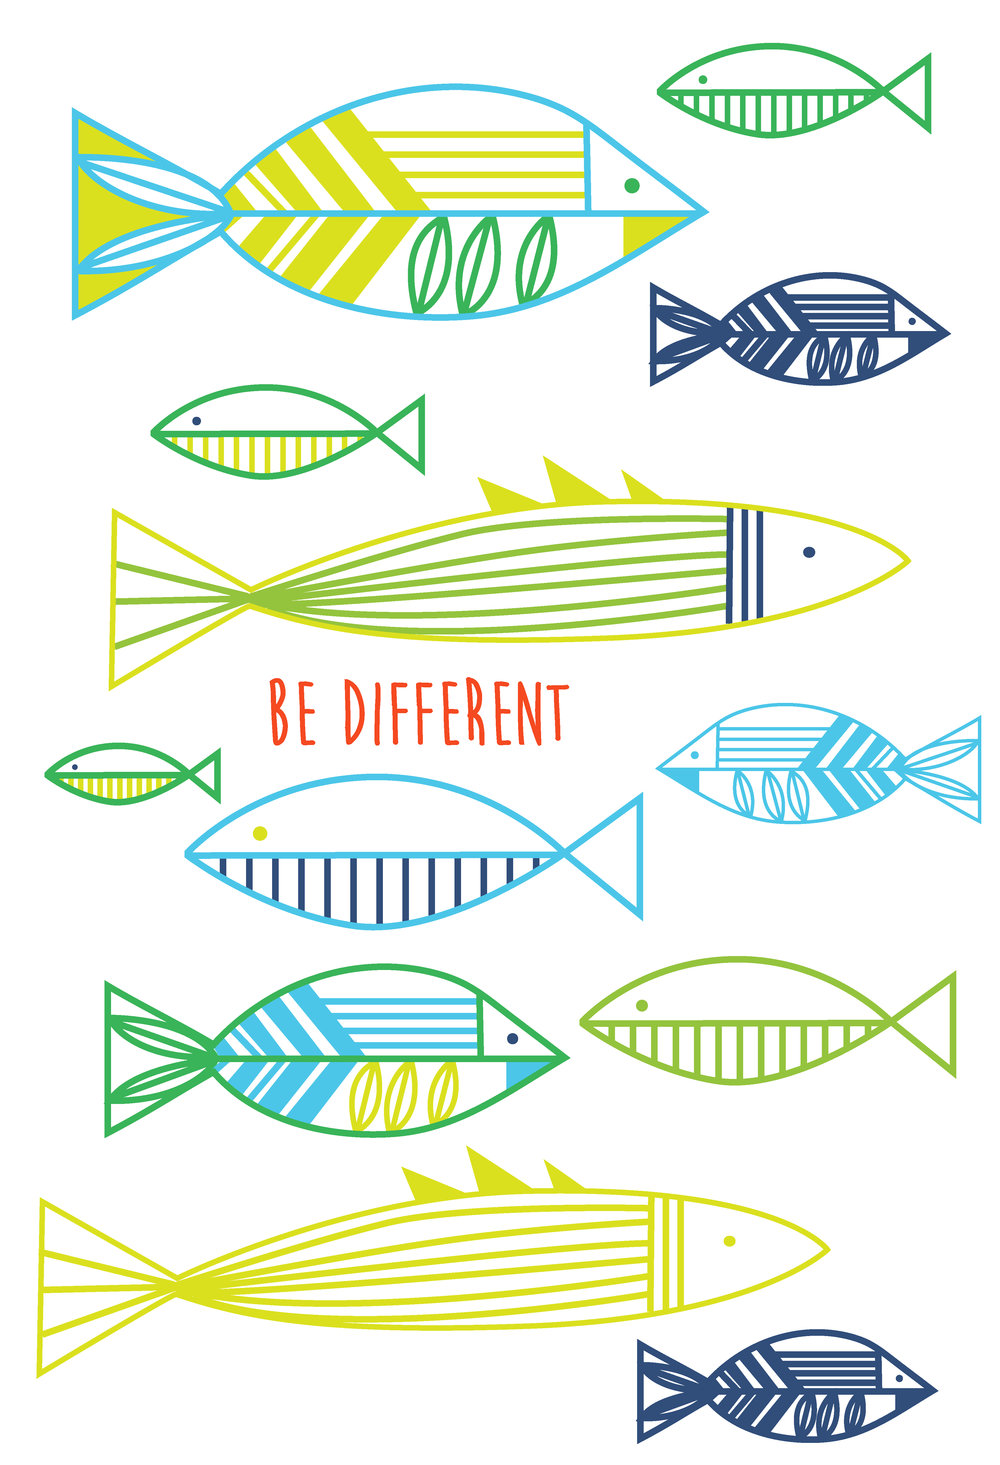 DishTowel_ideas_fish-02.jpg